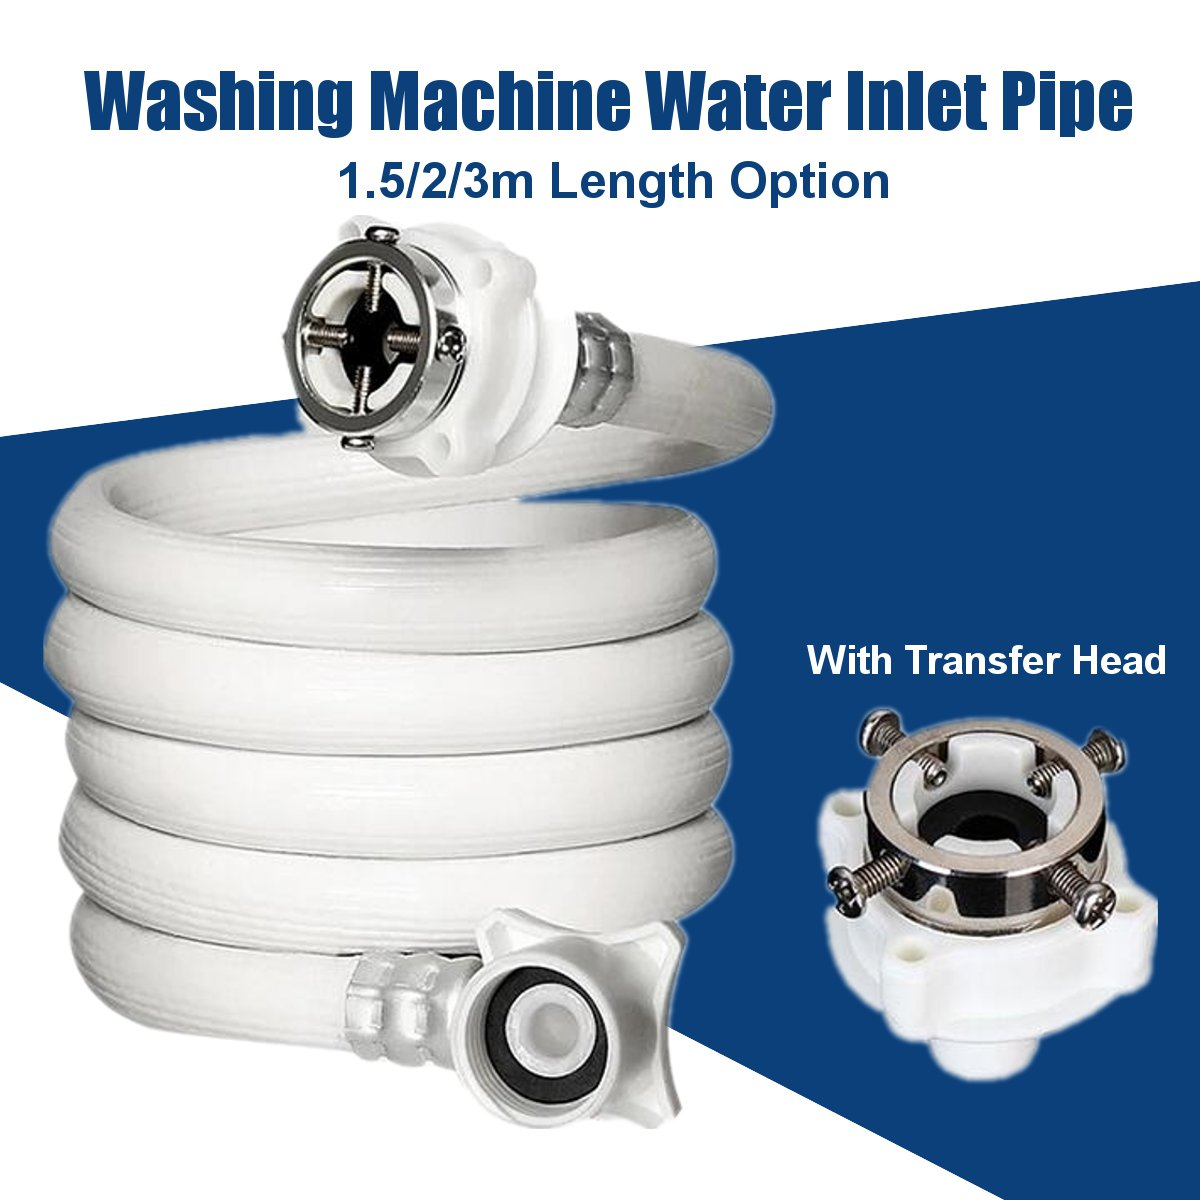 PVC Washing Machine Water Inlet Pipe 1.5/2/3m Hose Thicken Water Pipes Extension Tube Universal Parts Fittings Explosion-proof